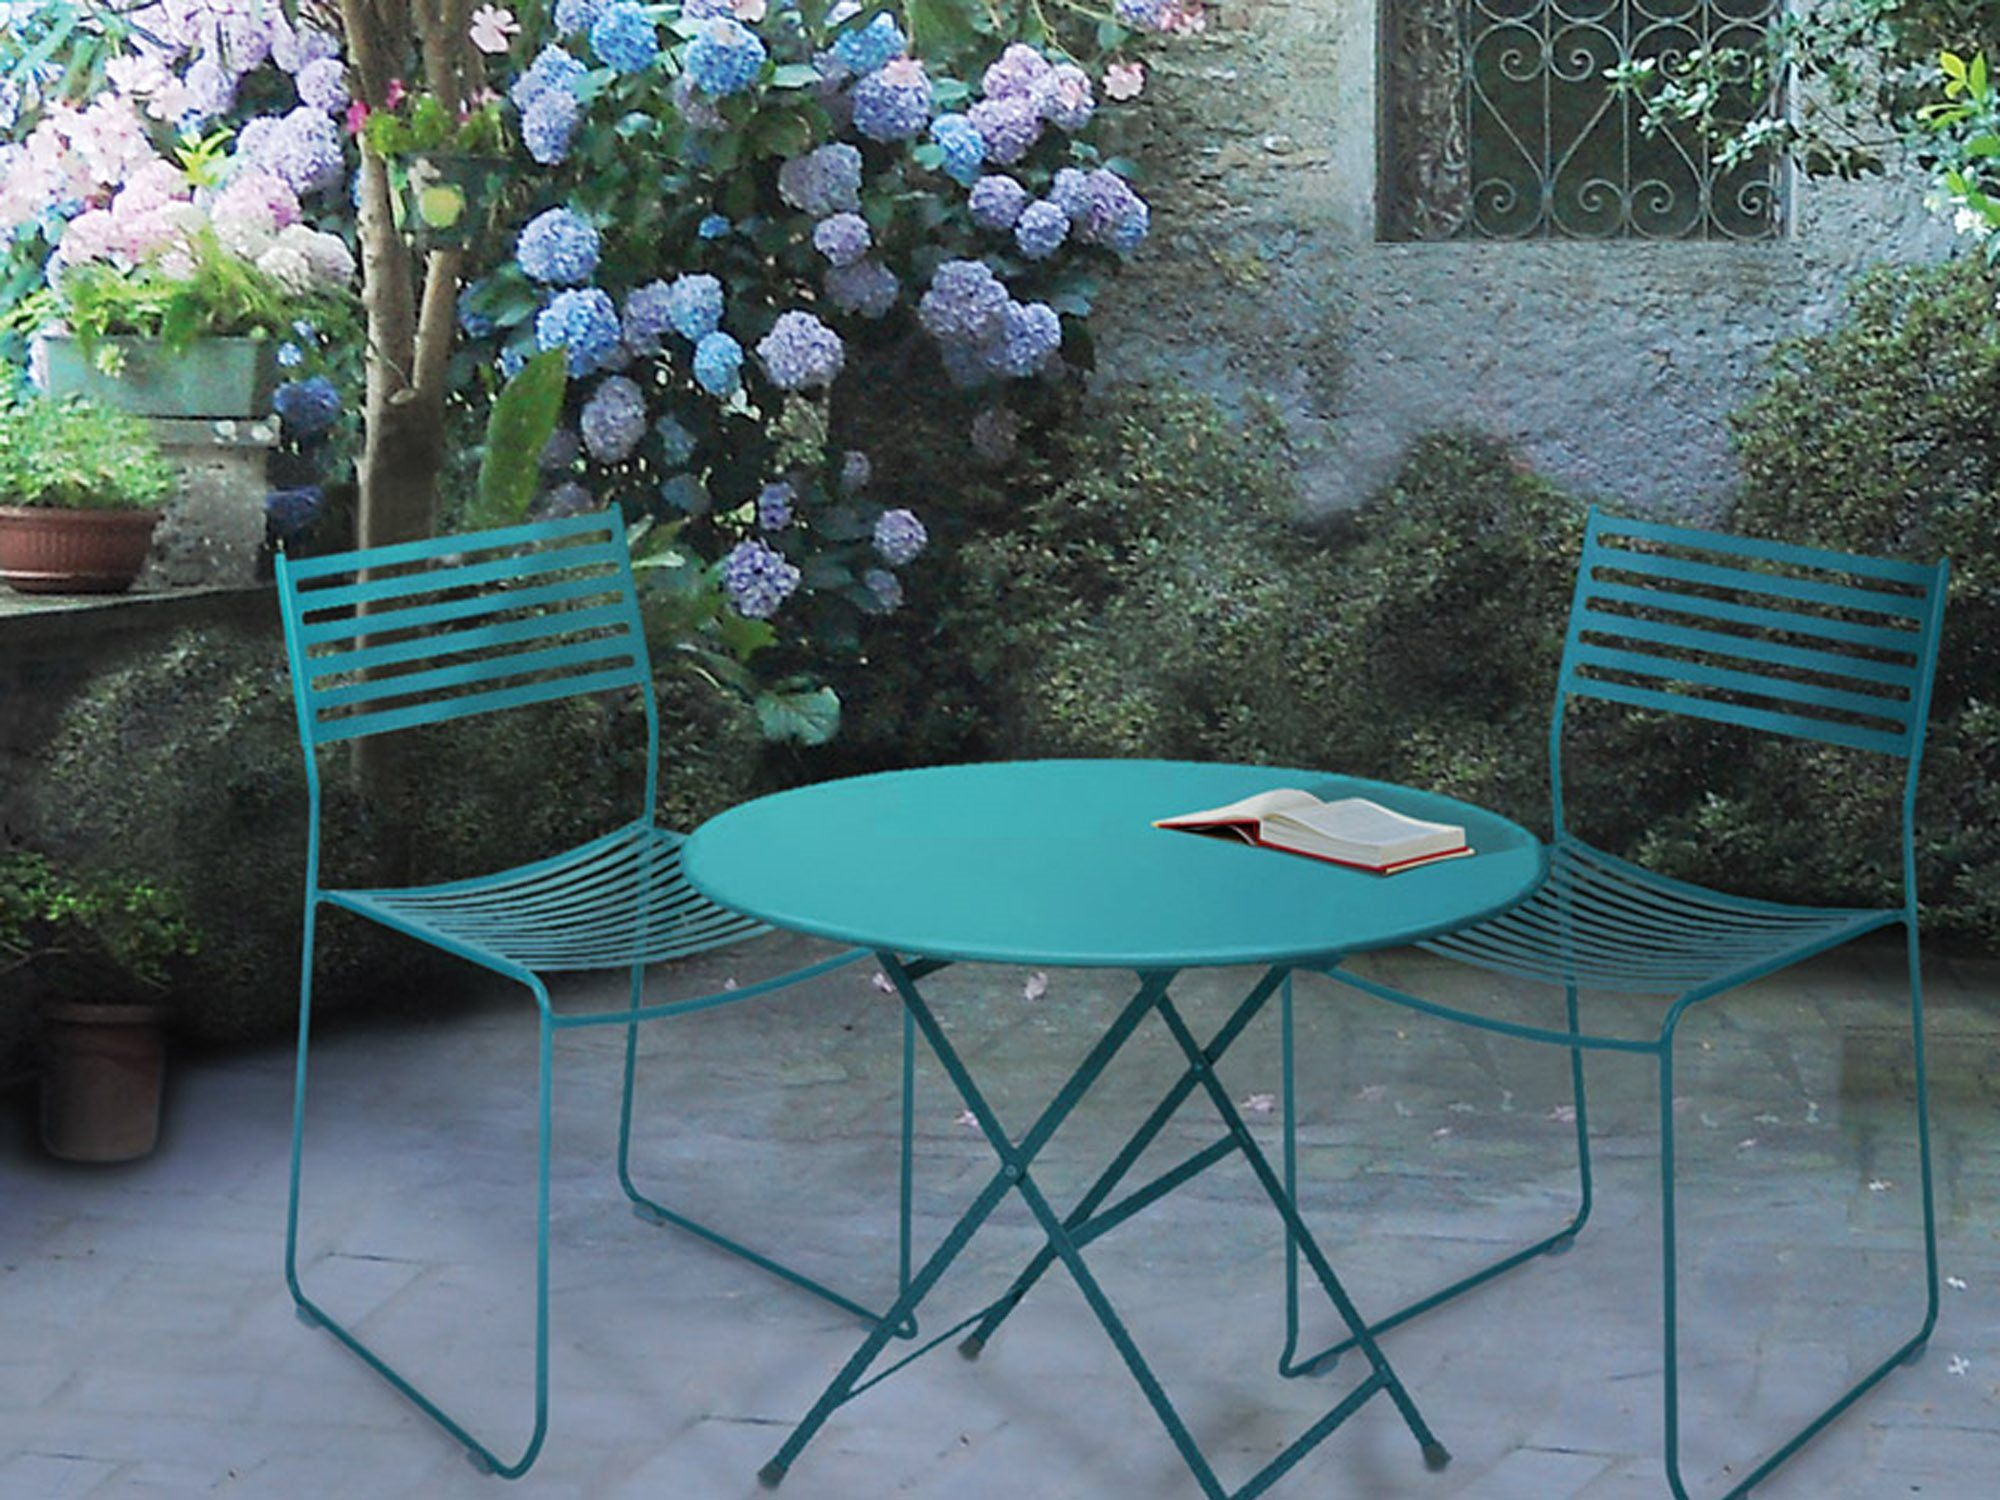 Whether You Are Looking To Decorate Indoors Or Purchase Quality Patio  Furniture, LuxeDecor Has What Youu0027re Looking For.